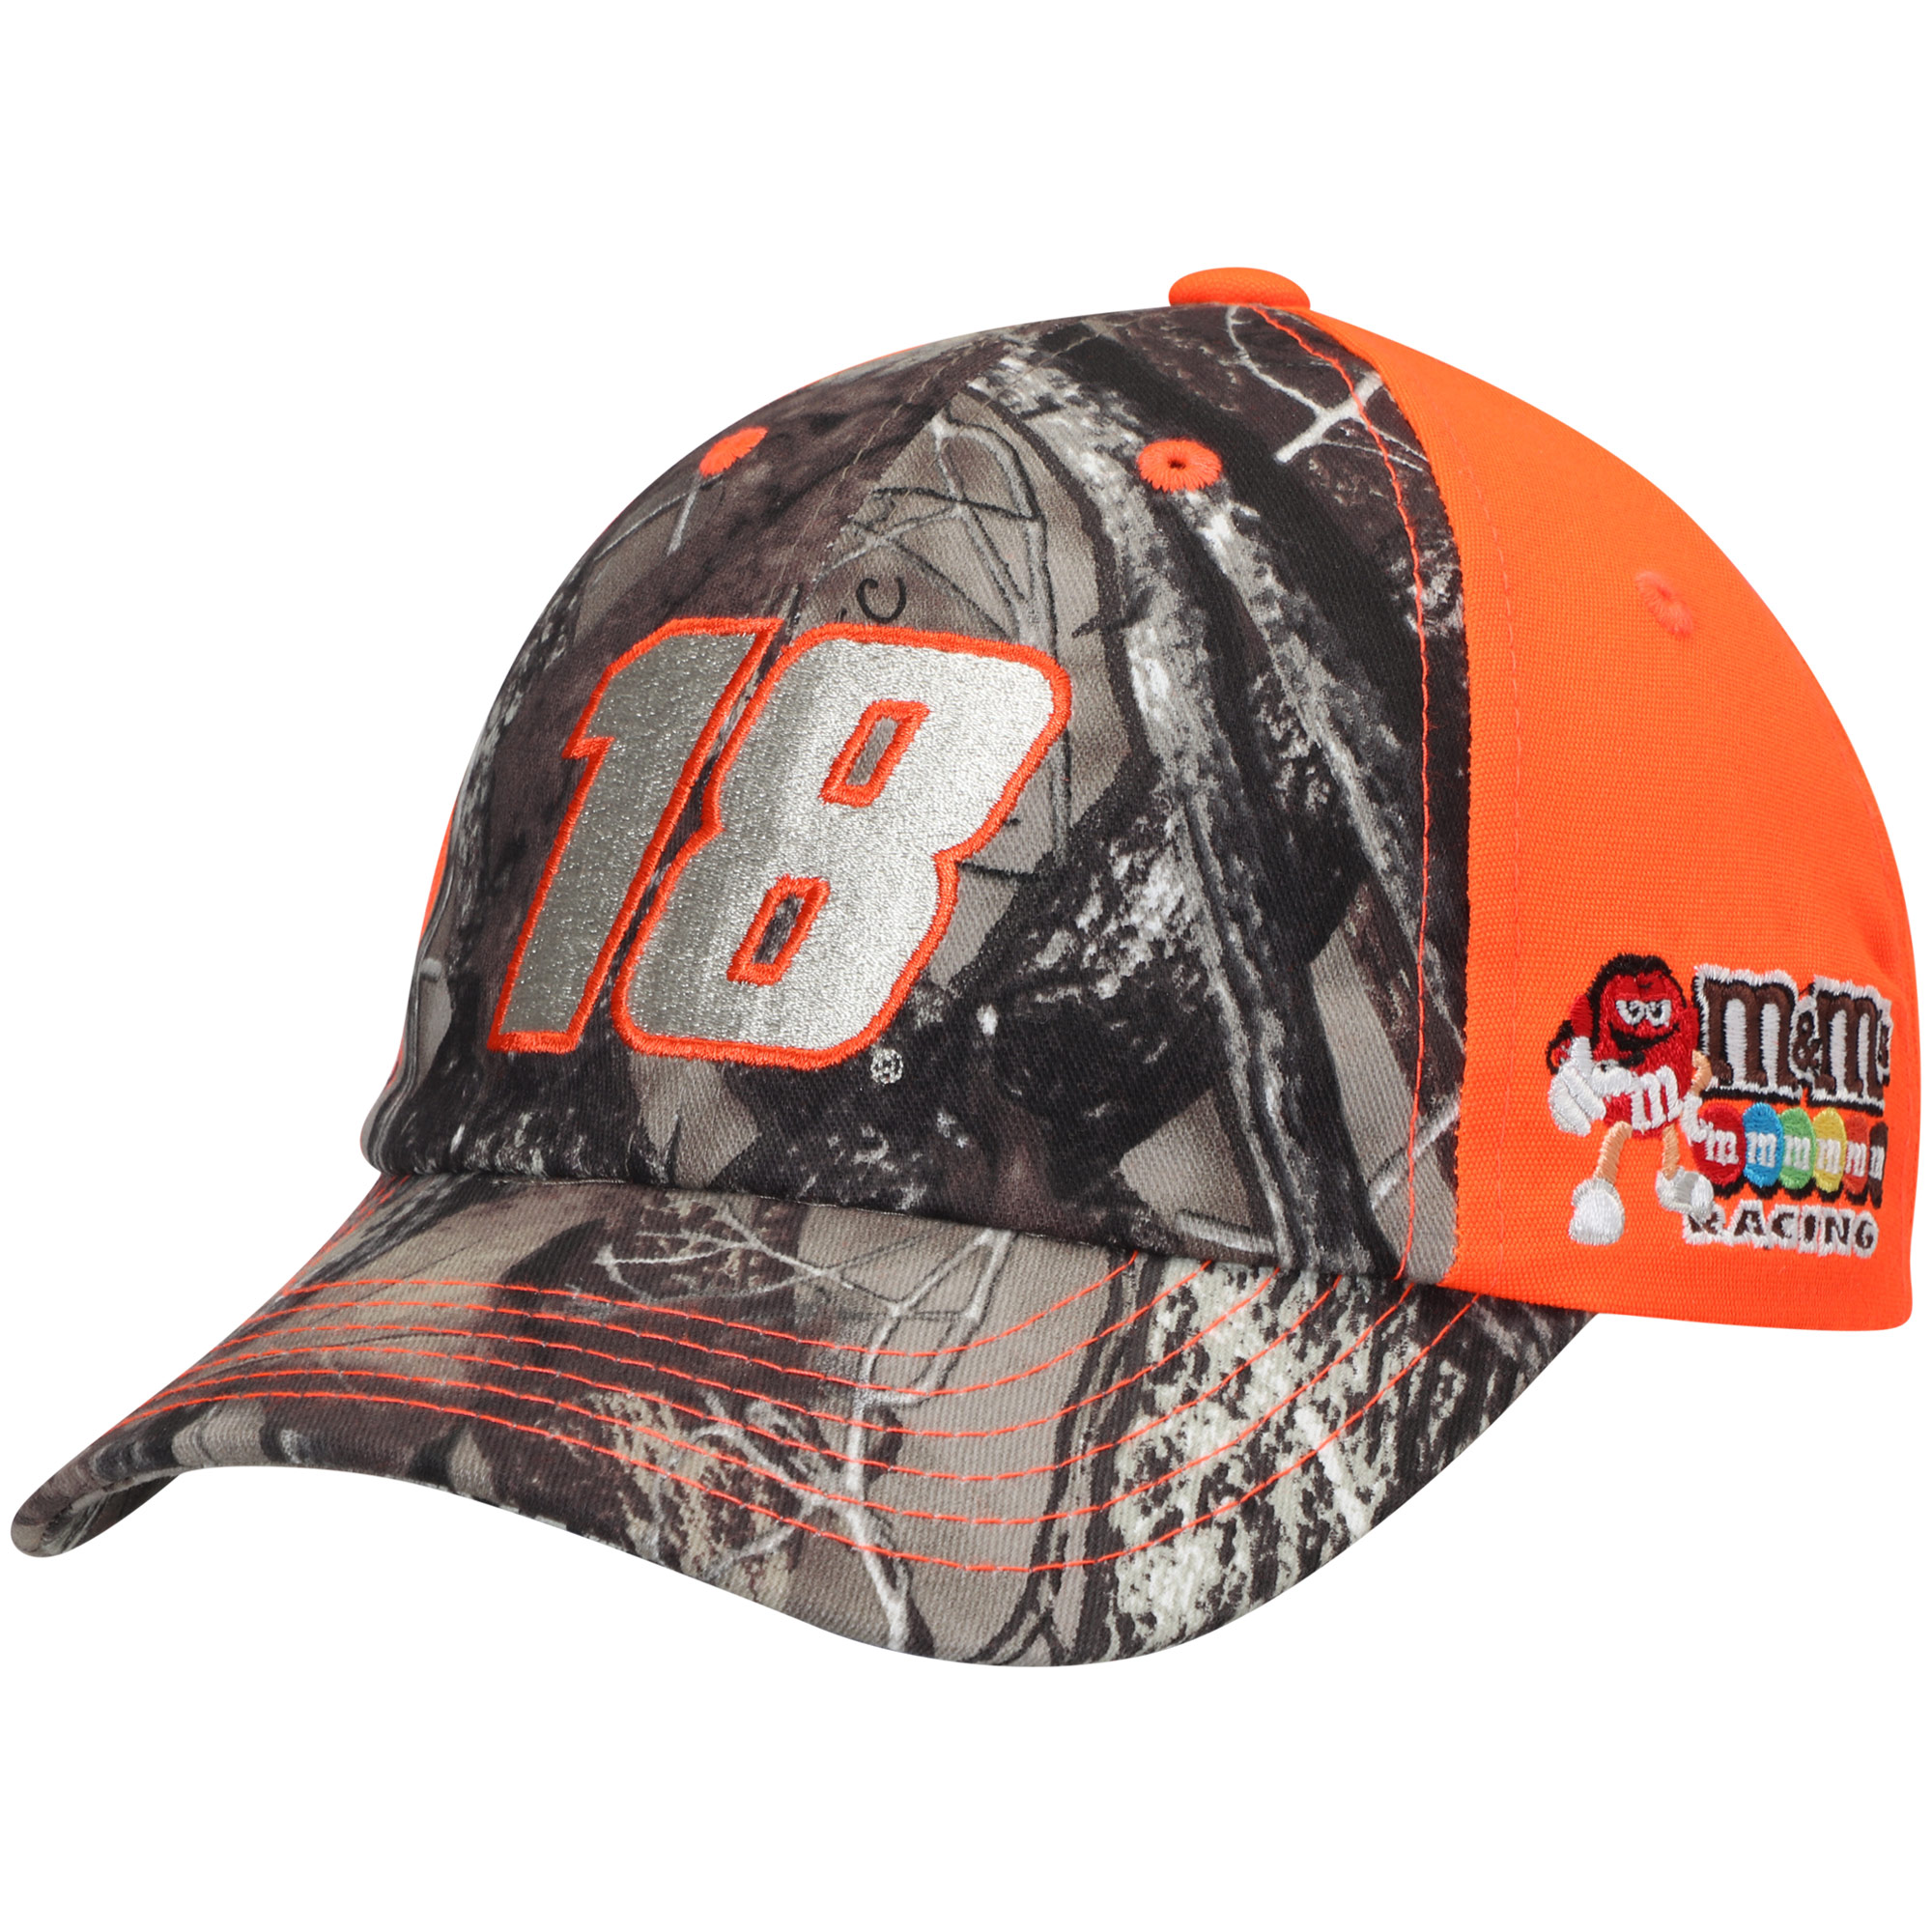 Kyle Busch Joe Gibbs Racing Team Collection Youth True Timber Blaze Adjustable Hat - Camo/Orange - OSFA